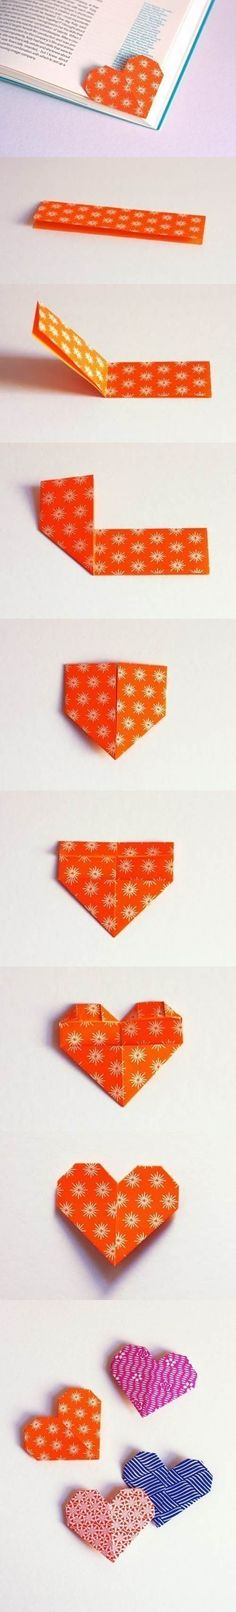 DIY Cute Origami Heart Shaped Bookmark 2